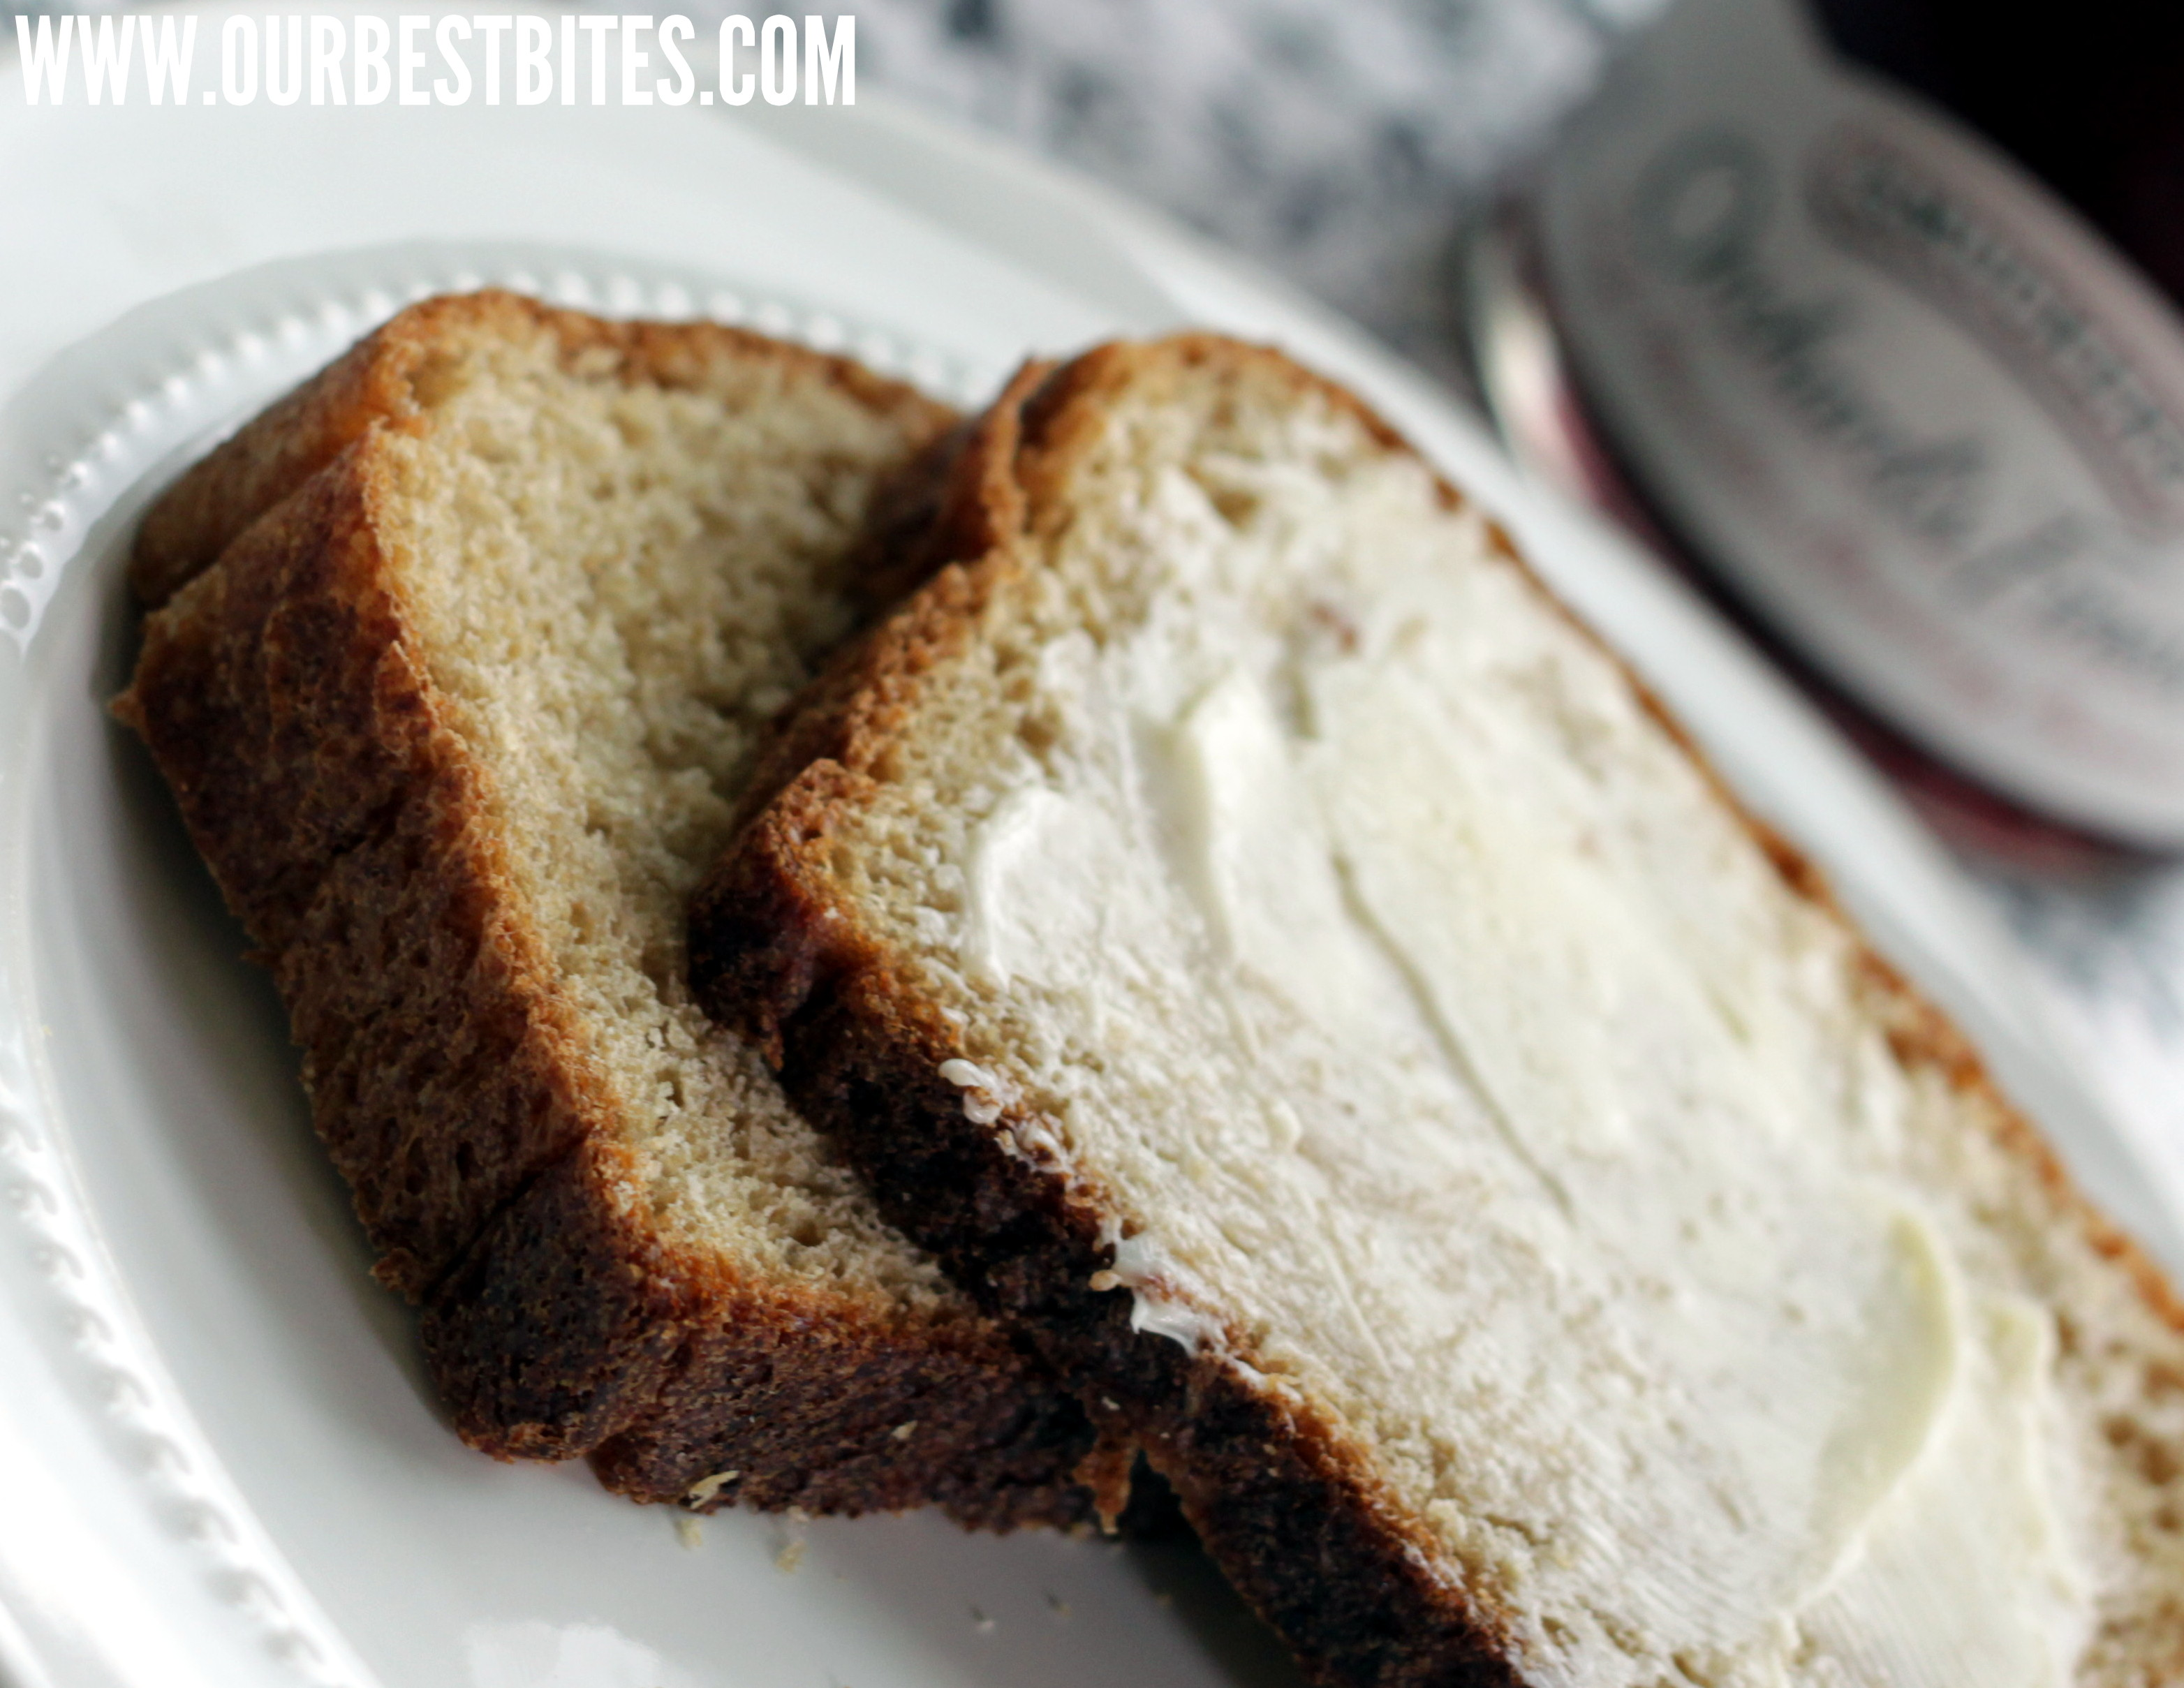 Honey Whole Wheat Bread - Our Best Bites